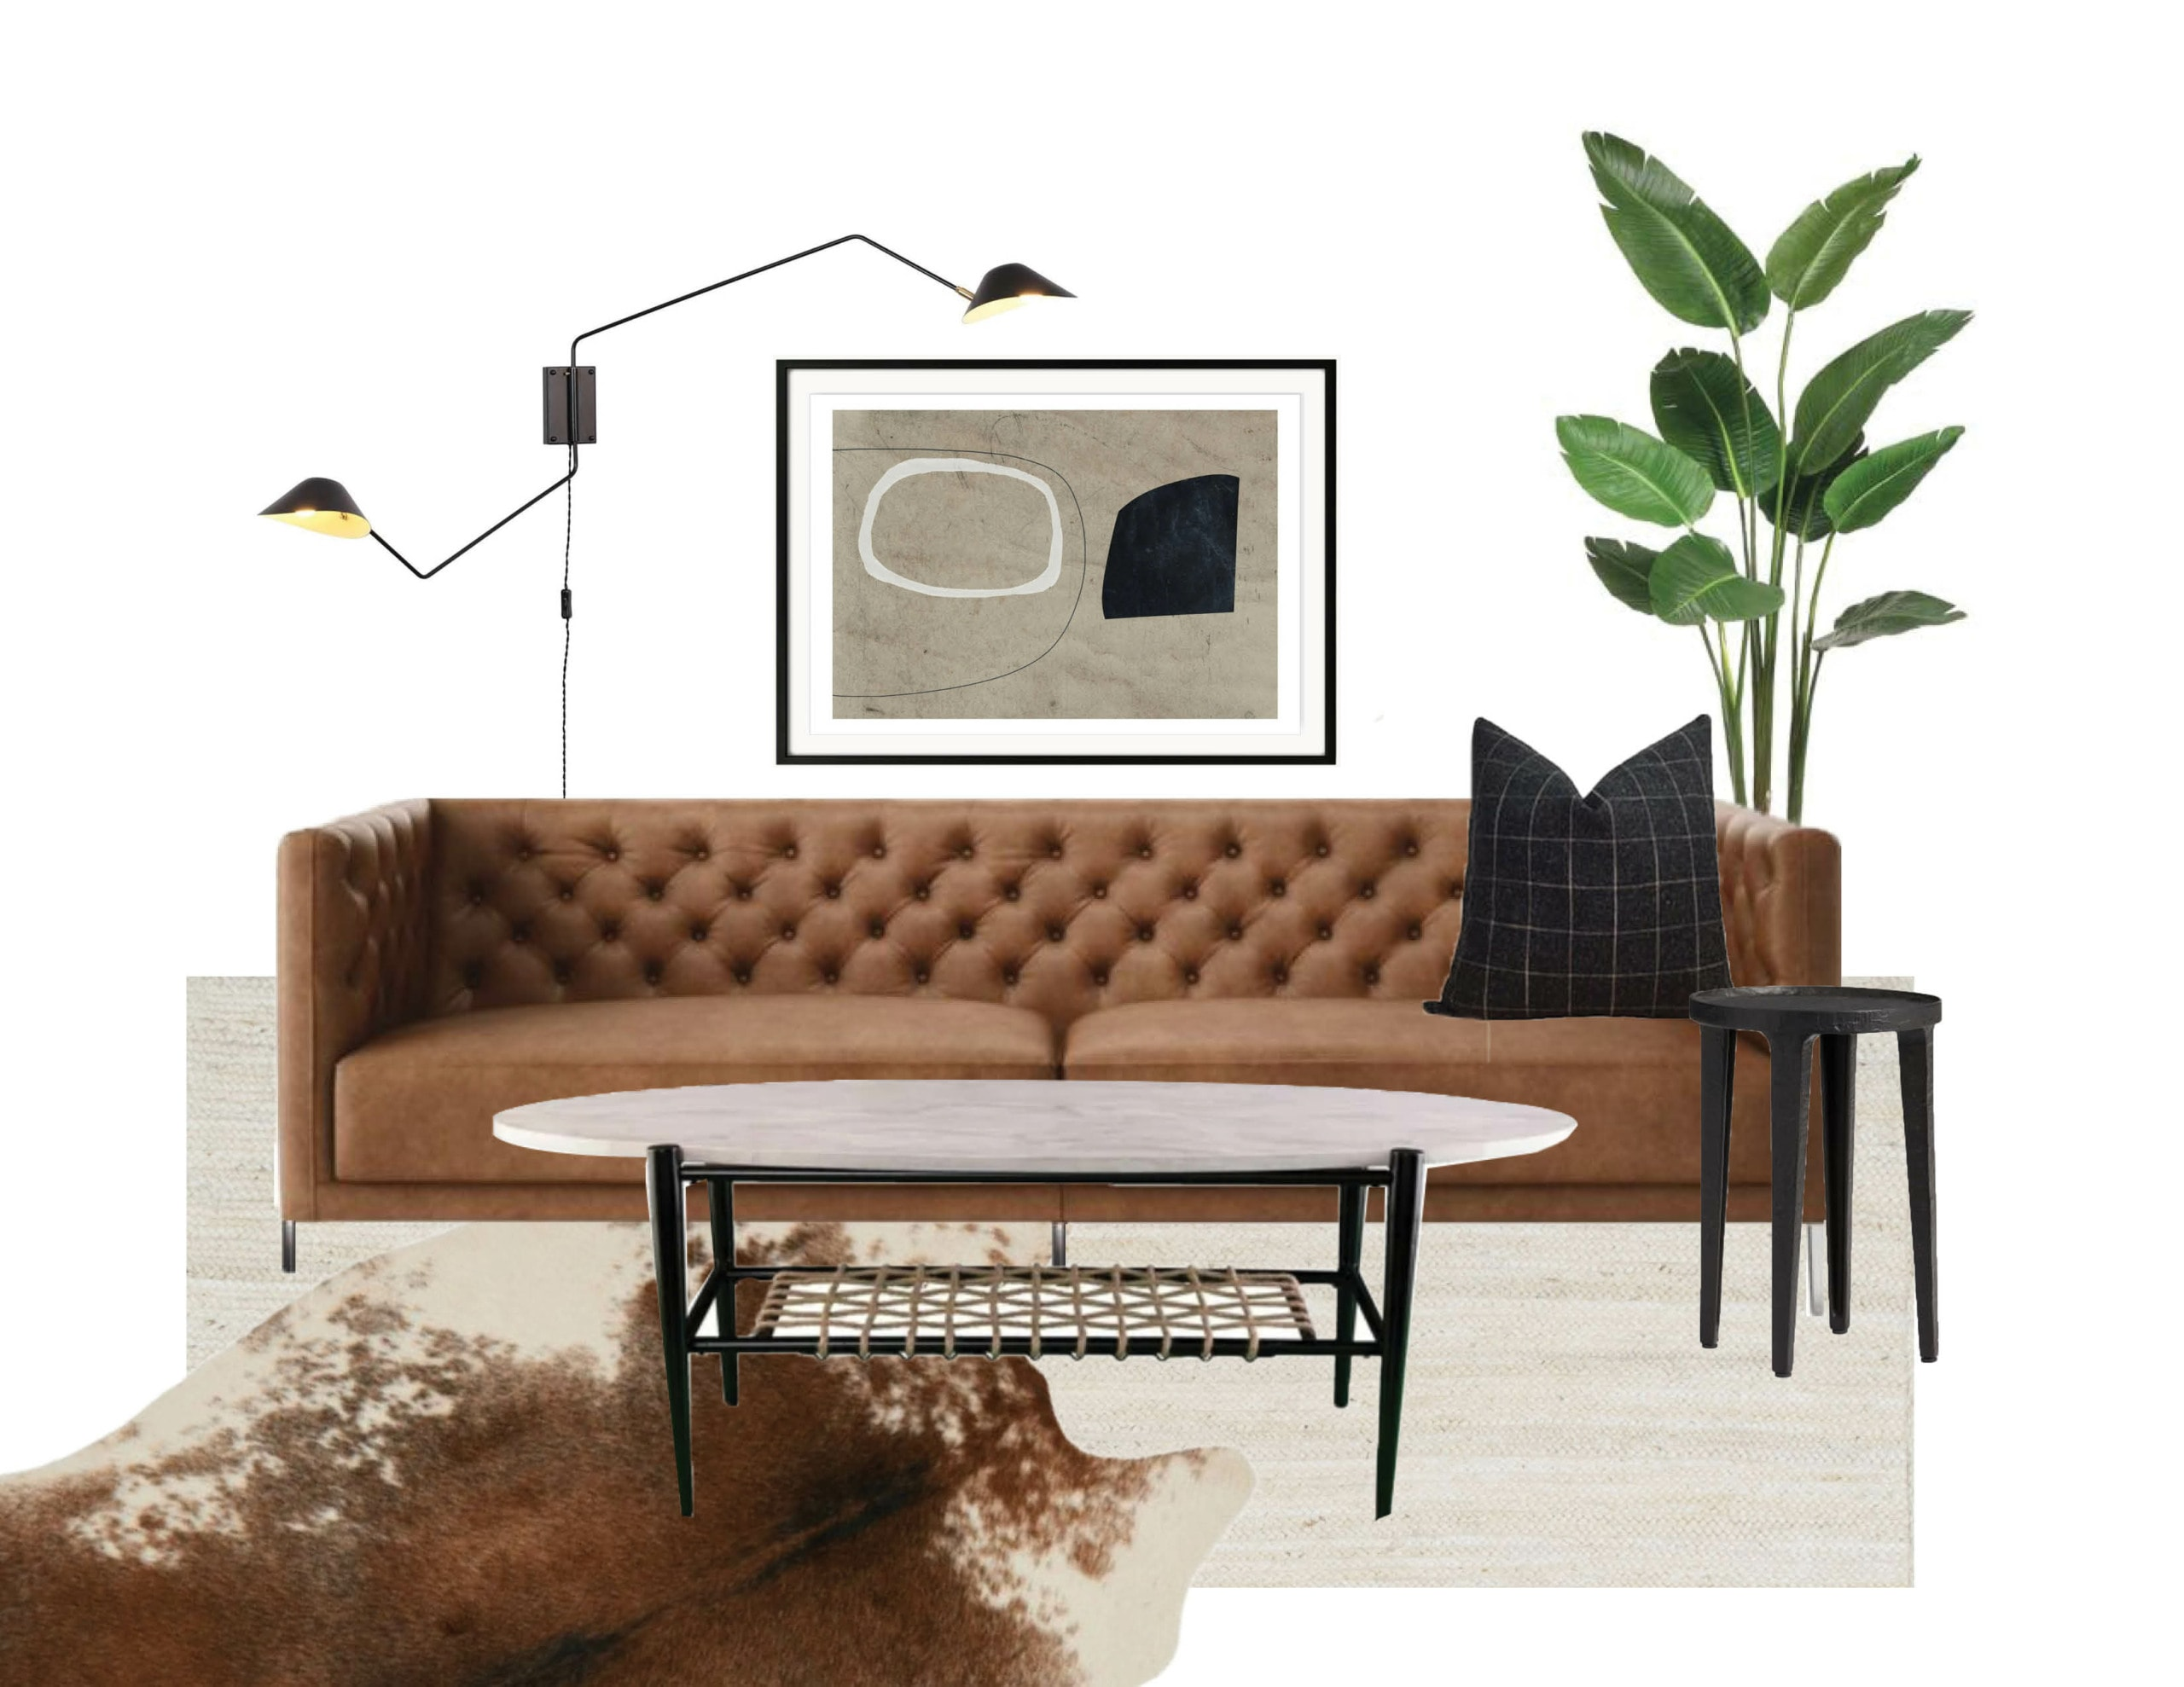 Choosing a leather couch for a living room in a mid-century modenr spanish bungalow